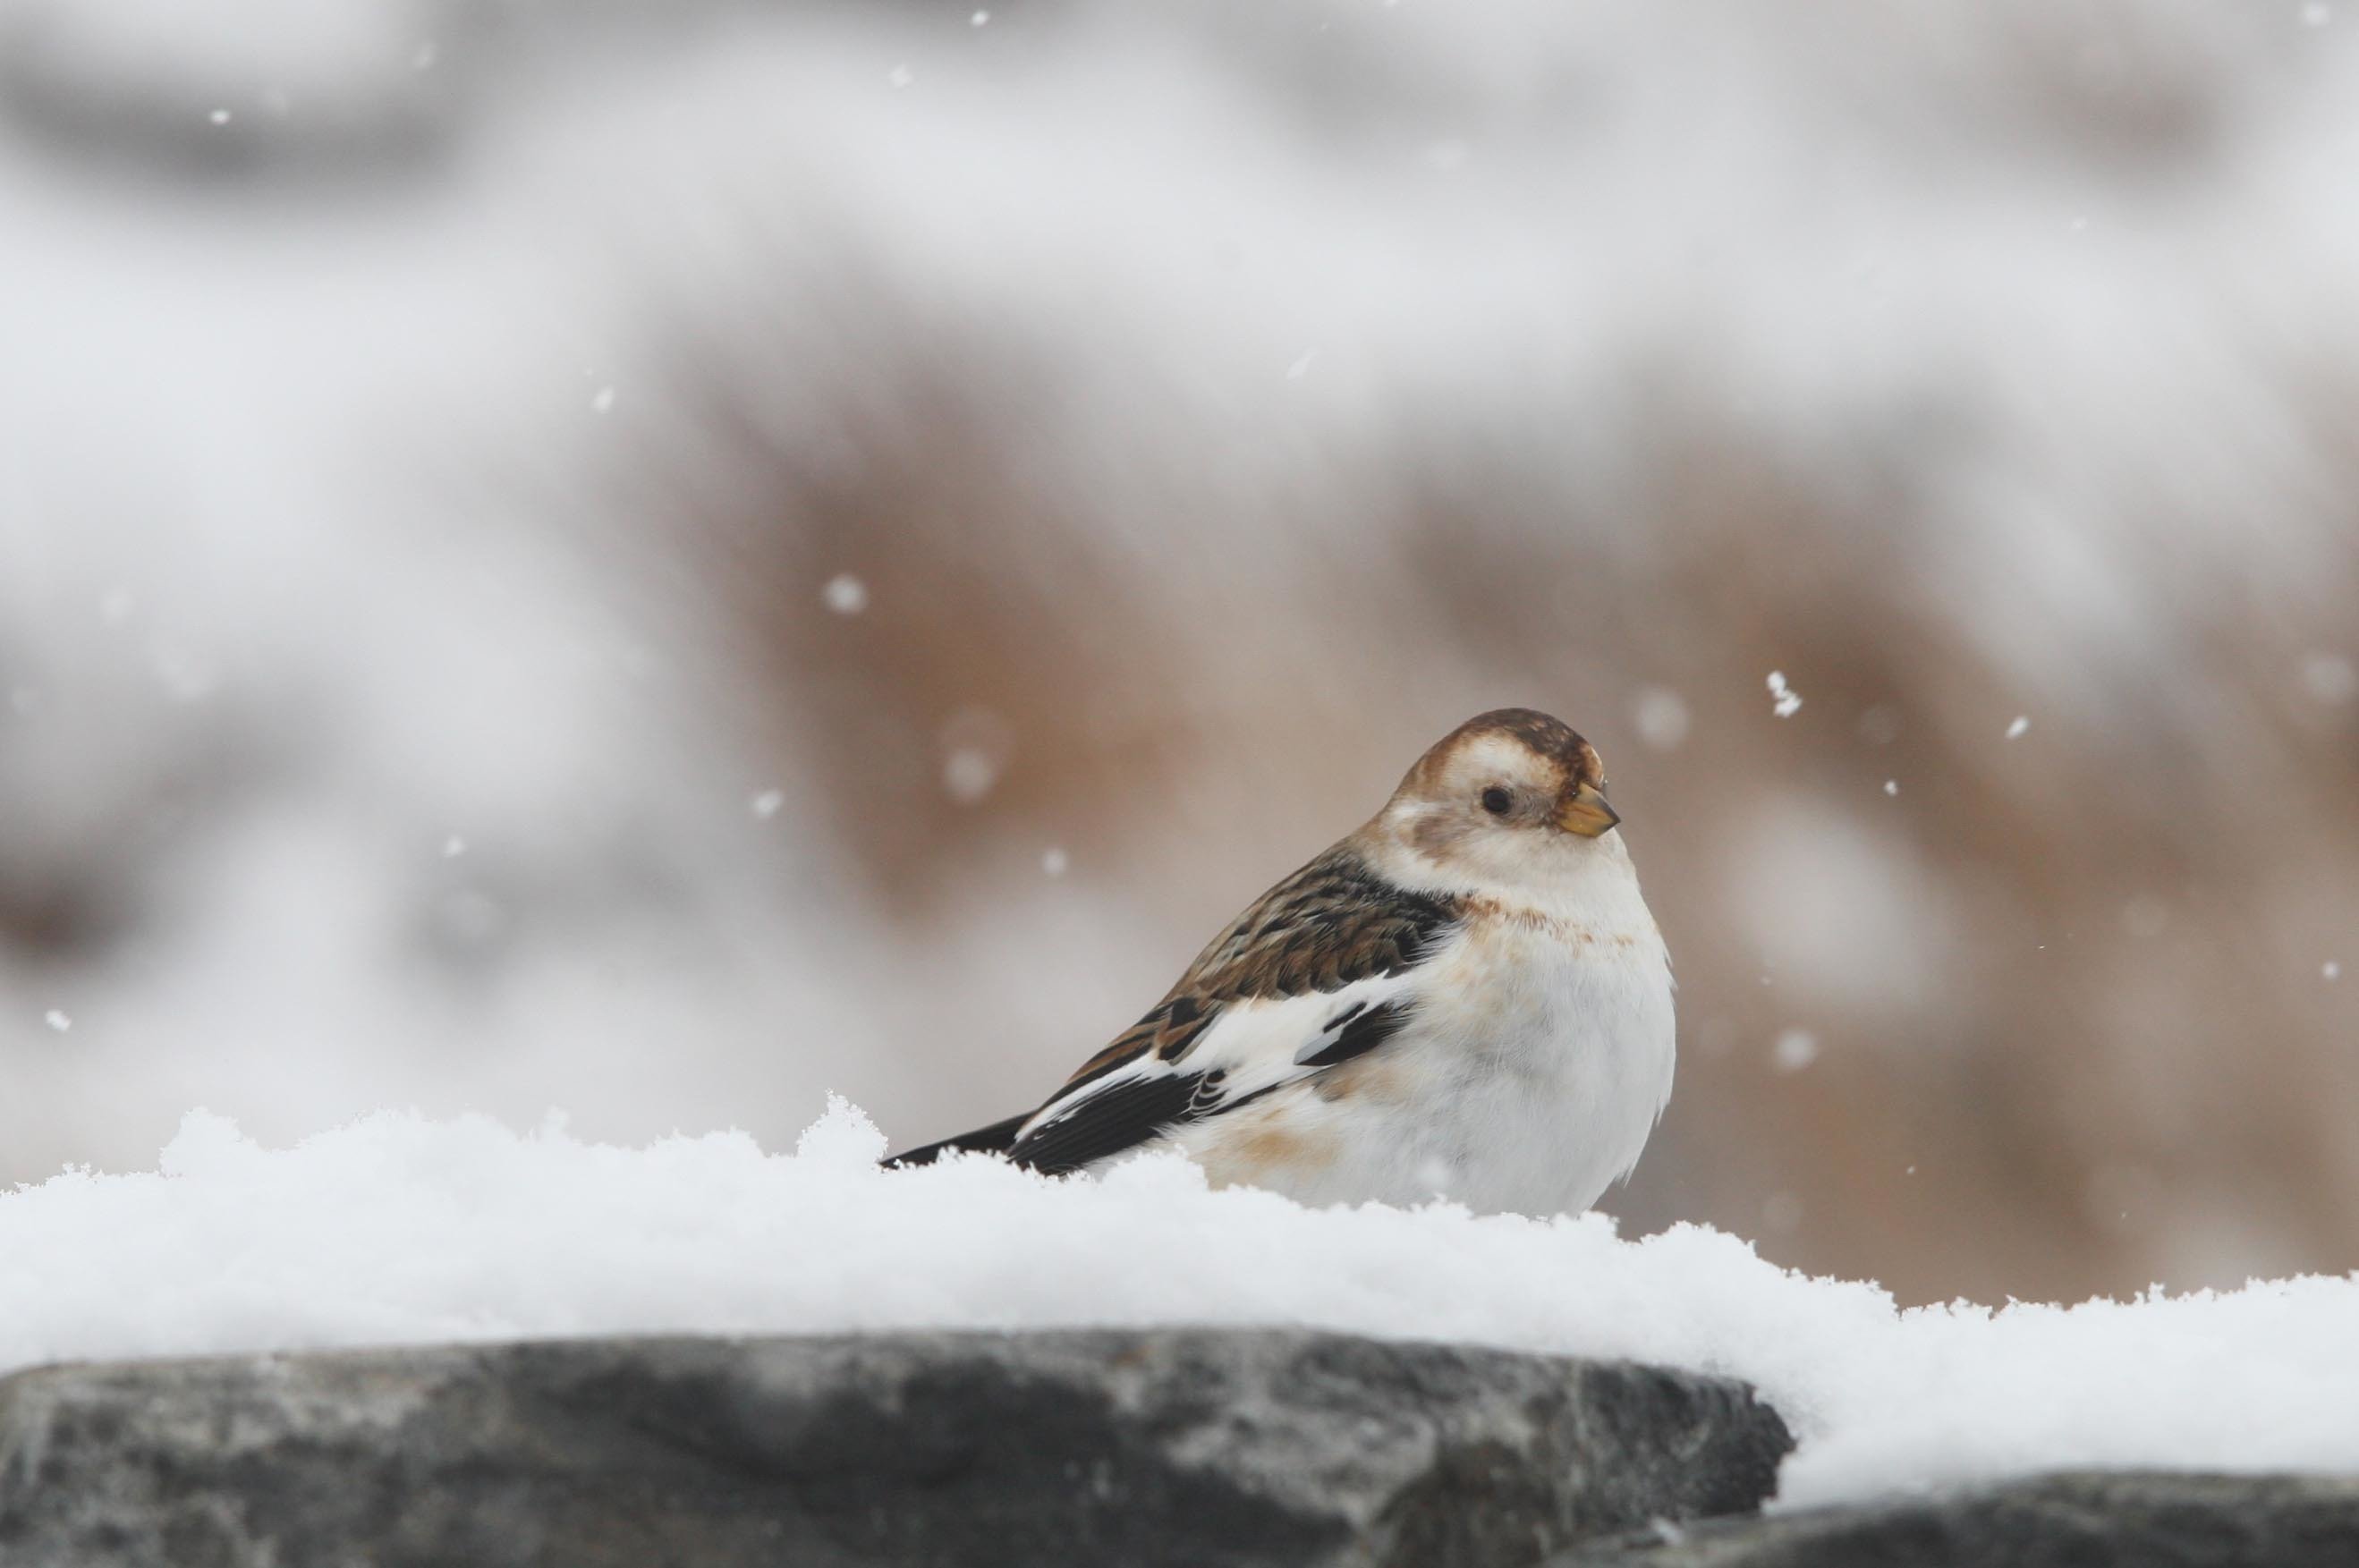 A snow bunting sits on a snow covered wall in Cairngorms National Park (Peter Jolly)